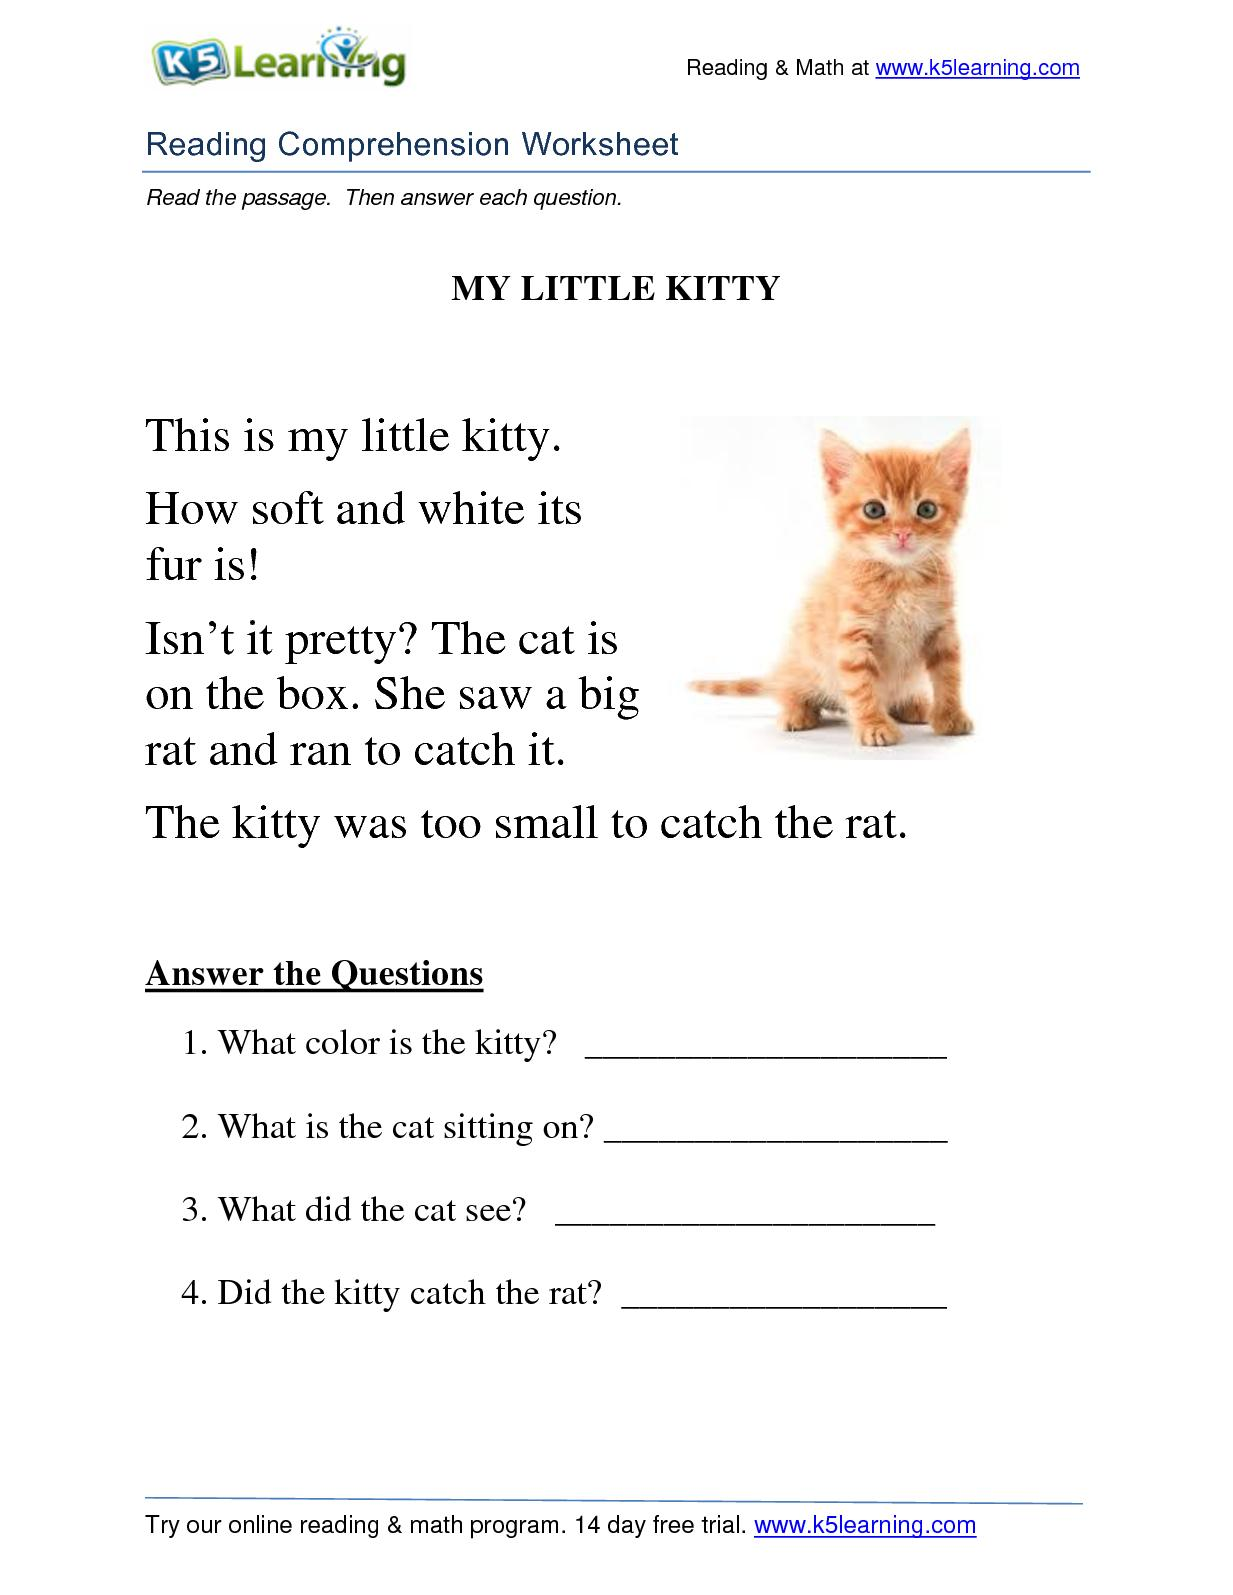 Calaméo - Reading Comprehension Worksheet Grade 1 Kitty